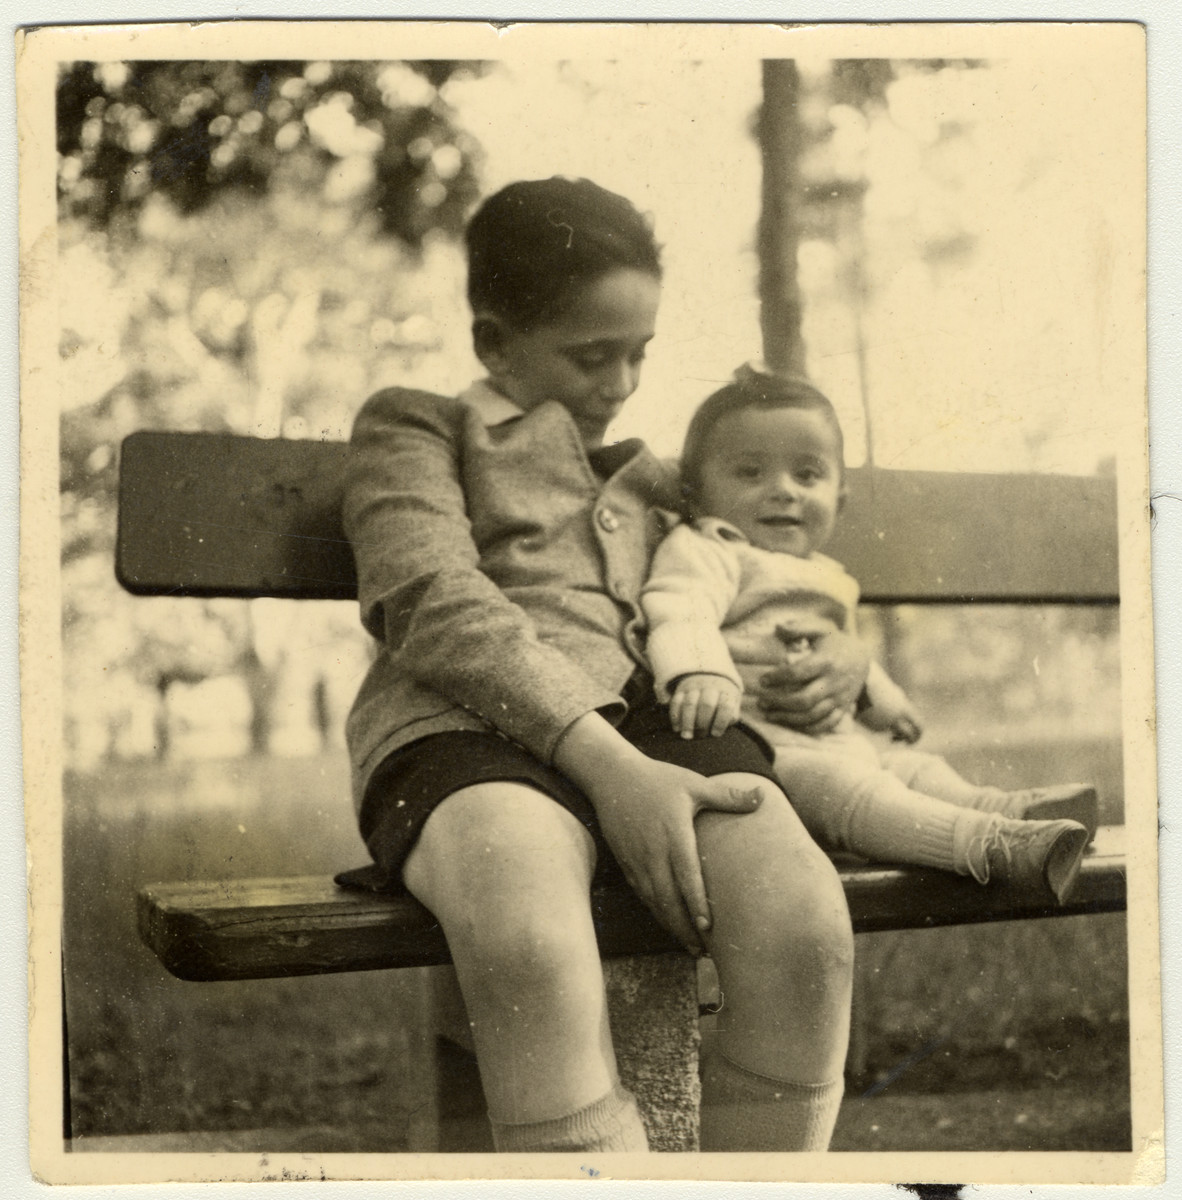 Janos Kovasc poses on a park bench with his half-brother, Istvan Reiner.